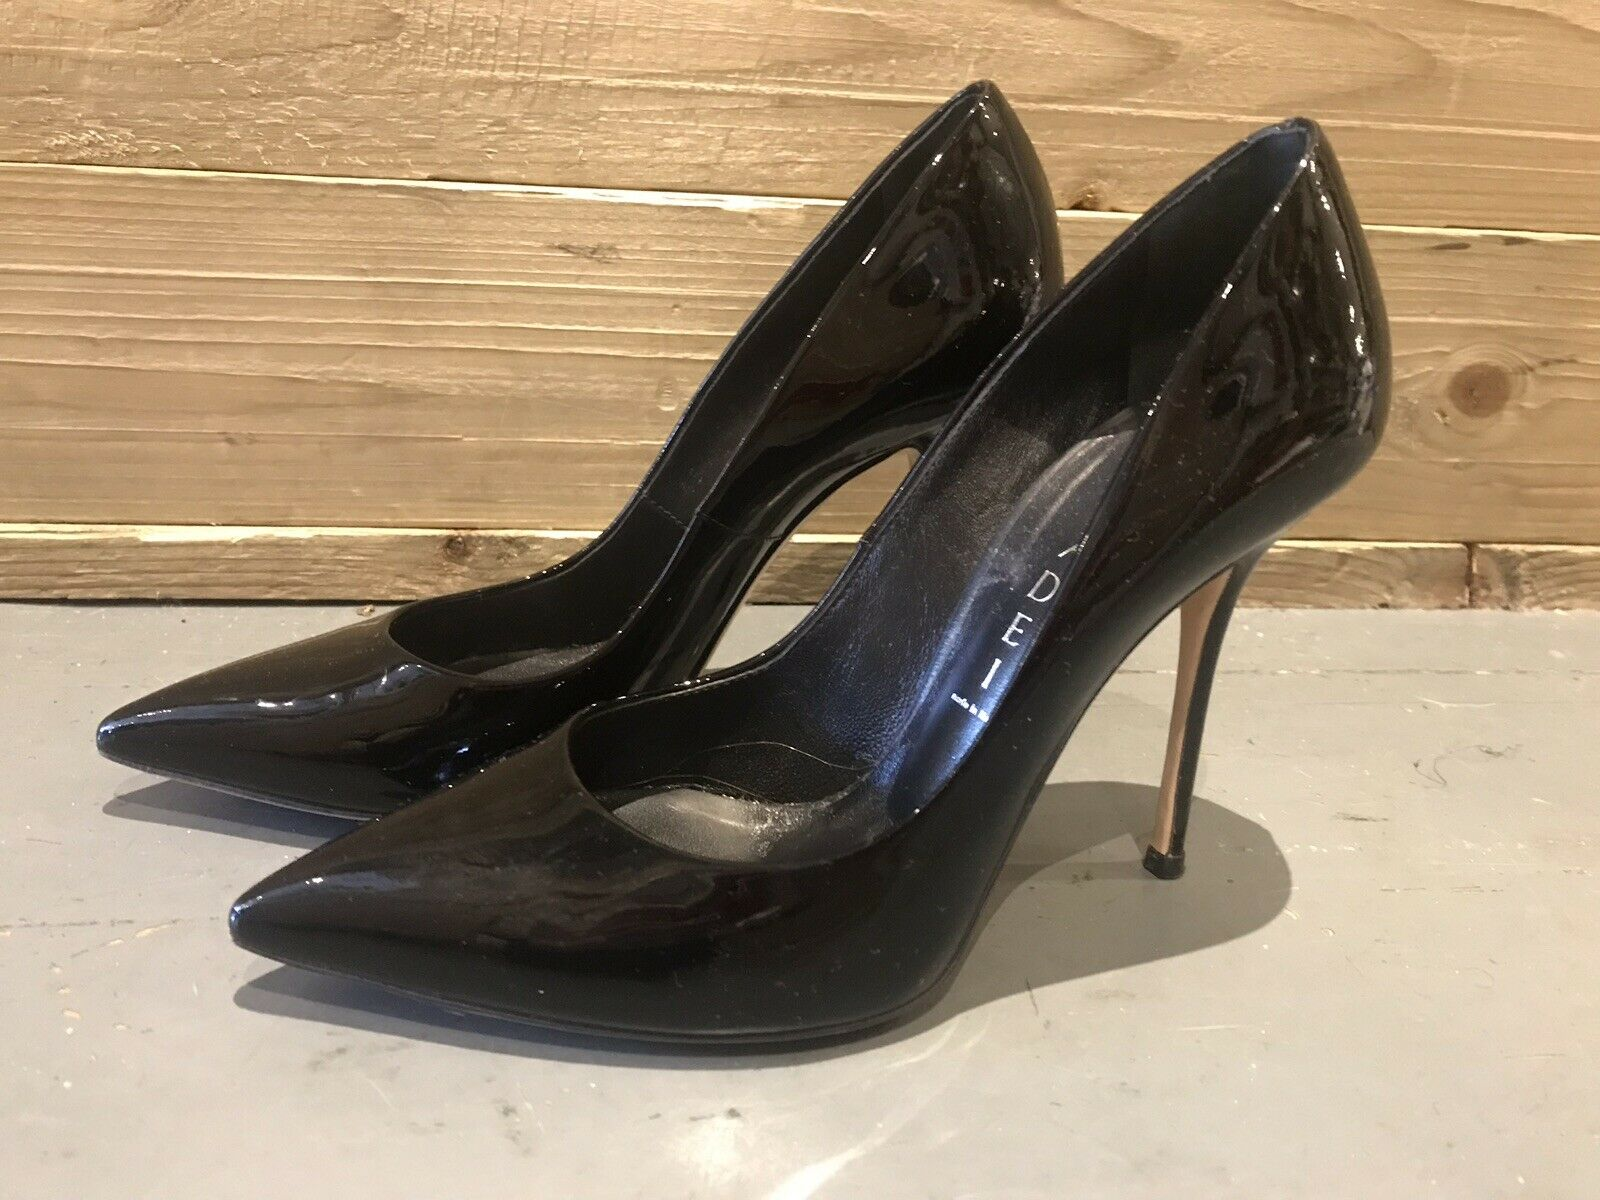 Casadei damen schuhe   Bargain     Now Only  UK Größe 4